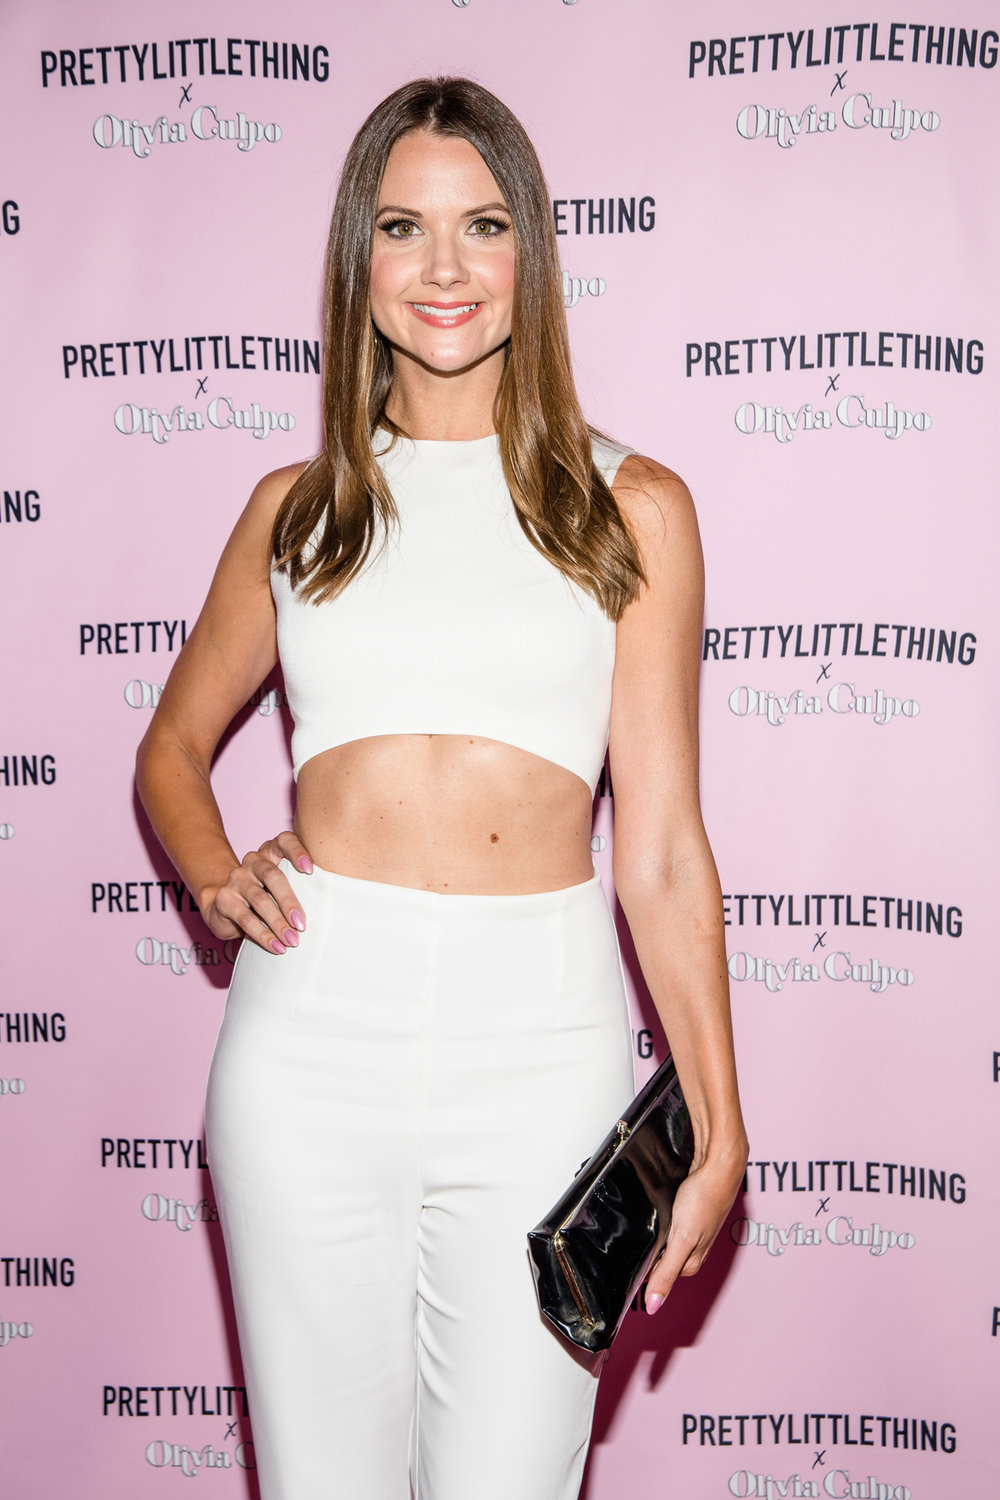 PrettyLittleThing PLT X Olivia Culpo Collection  Celebrity Launch Party Ashley Gibson.jpg